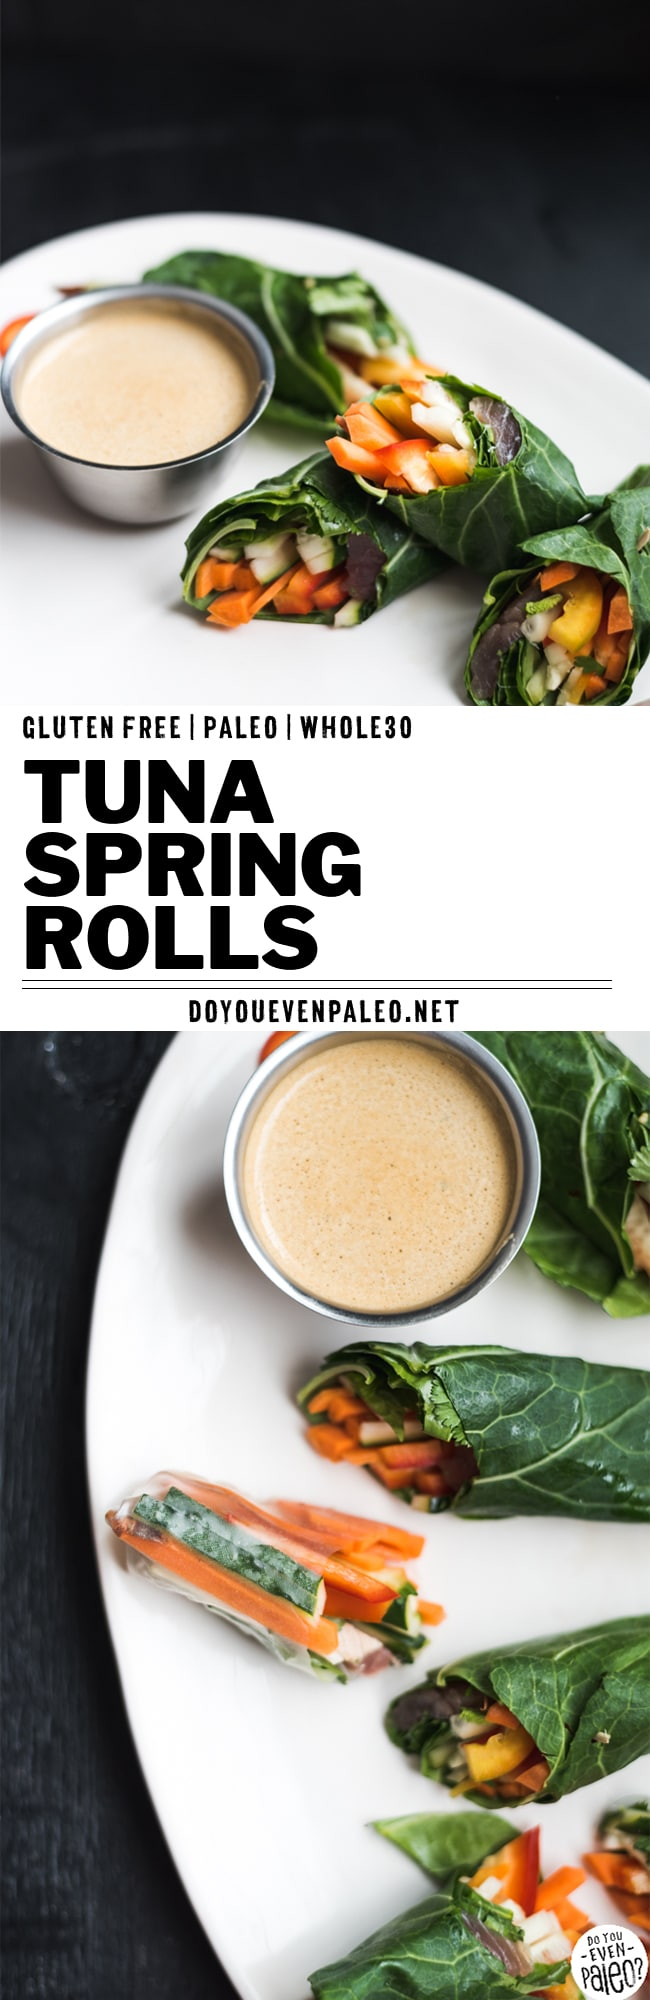 Paleo Tuna Spring Rolls — little bundles of veggies and fresh tuna fish wrapped in collard greens instead of rice paper wrappers! This Whole30 recipe has cucumbers, carrots, bell pepper, and herbs in one bite. A healthy, gluten free, clean eating, and paleo recipe. | DoYouEvenPaleo.net #paleo #whole30 #doyouevenpaleo